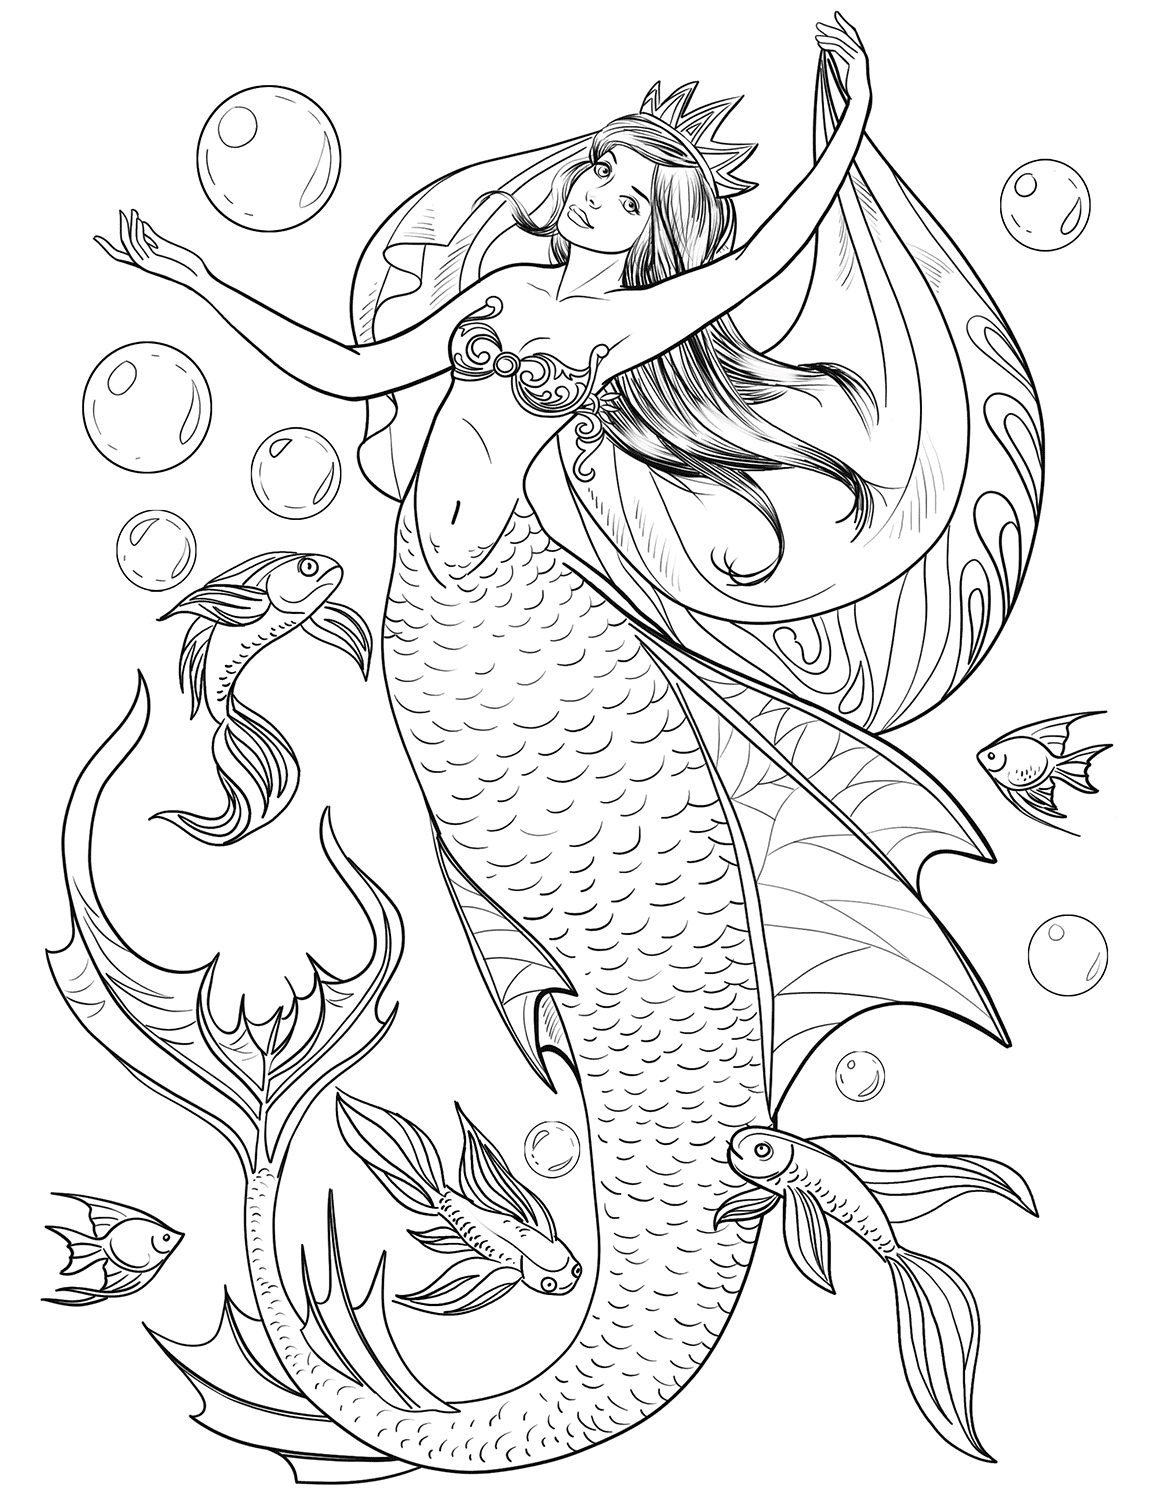 Coloring Pages Mermaid Ideas - Whitesbelfast | 1500x1159